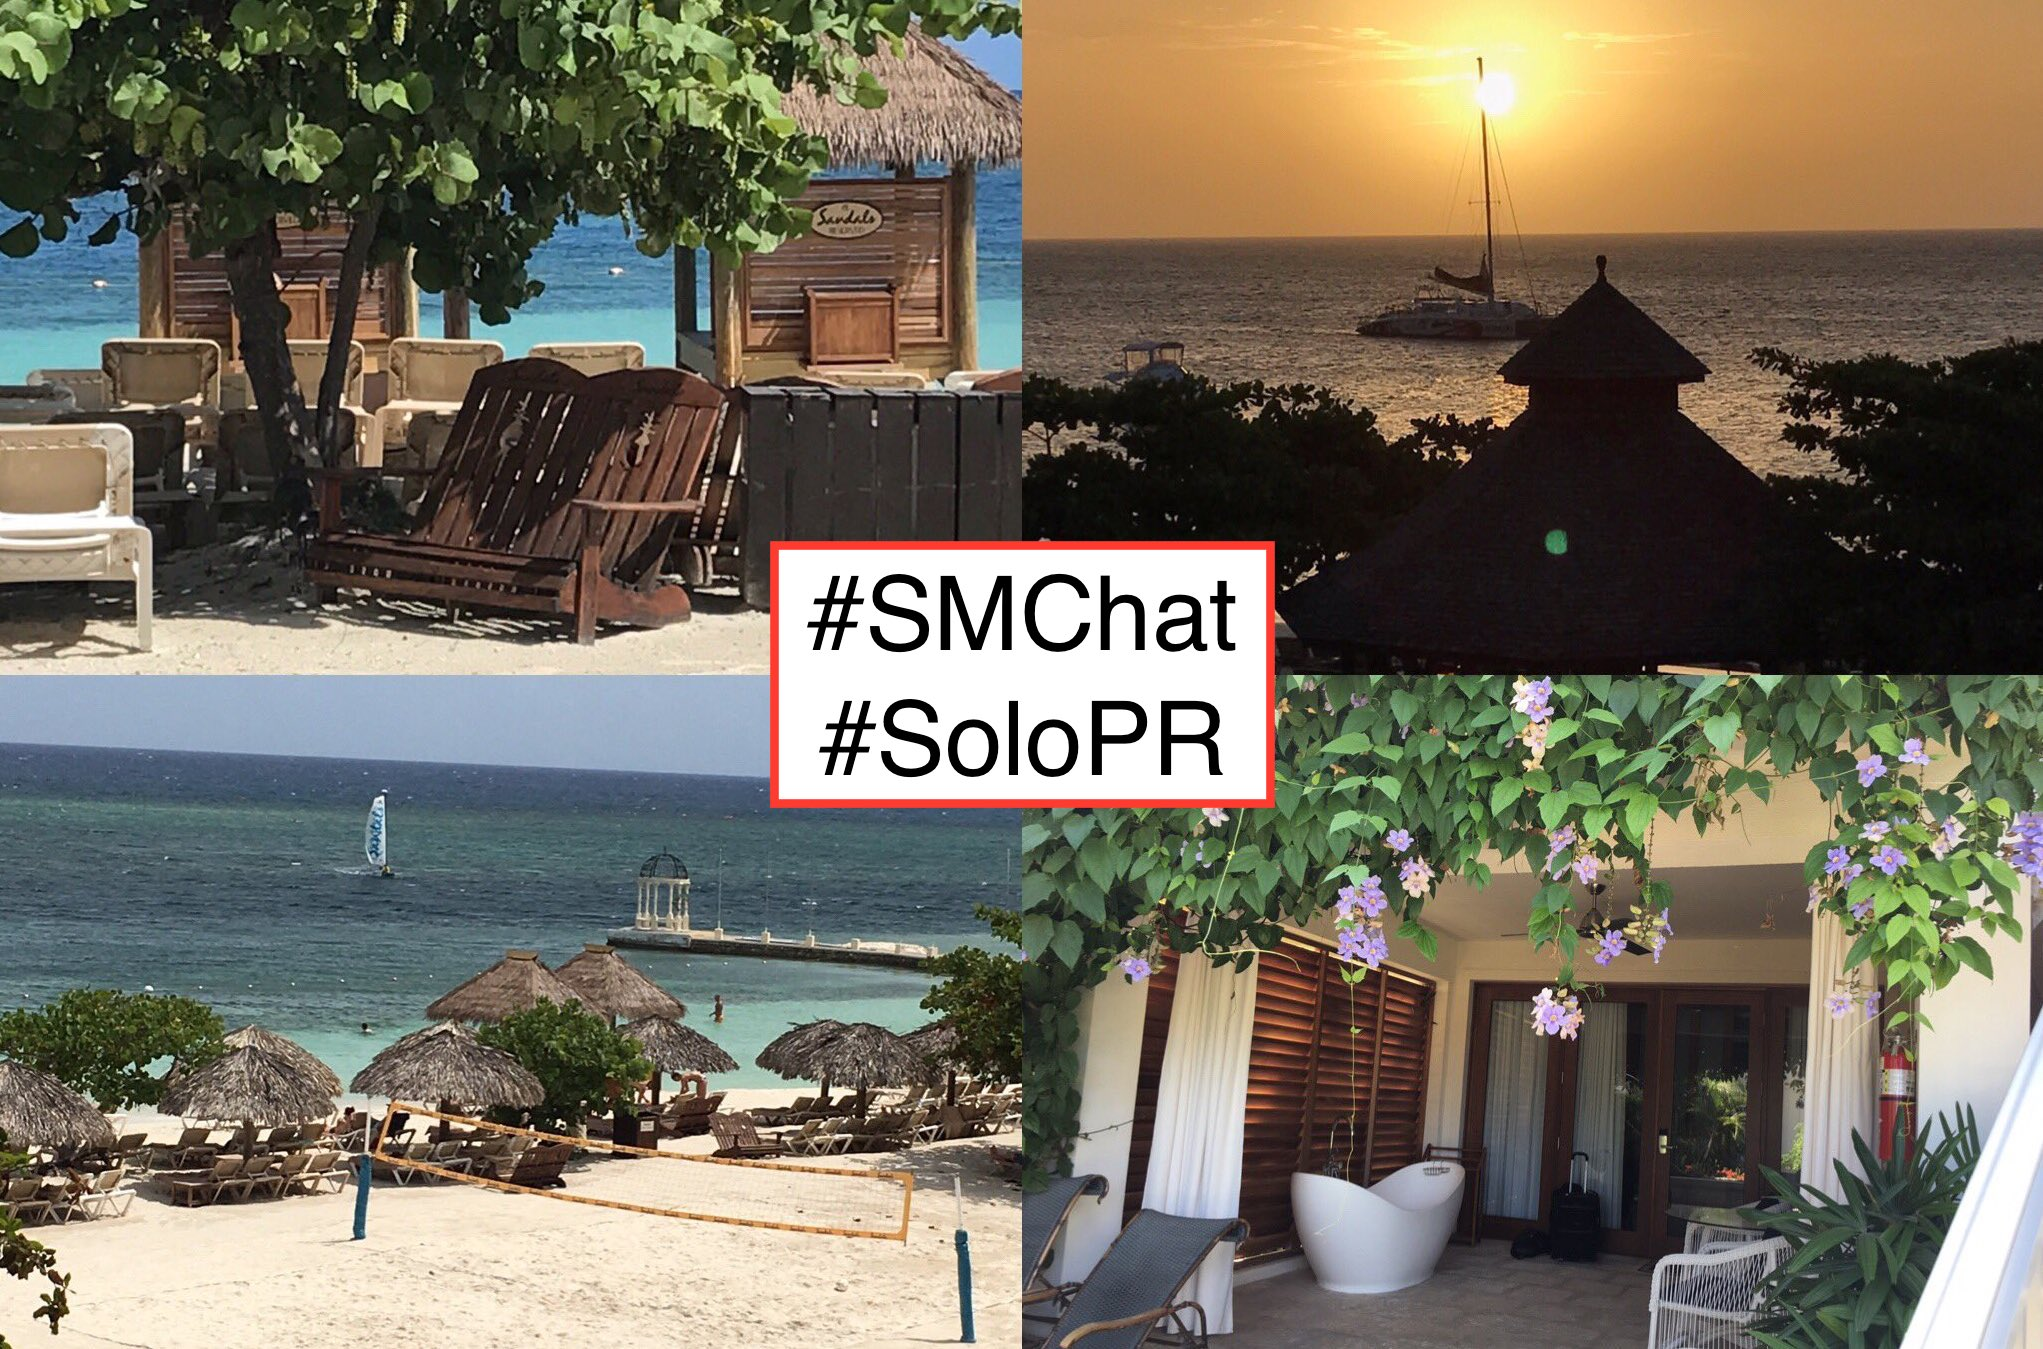 RT @sharonmostyn #smchat #solopr Q1 How do you keep up when you're supposed to be taking time off? https://t.co/82B567Yqrc